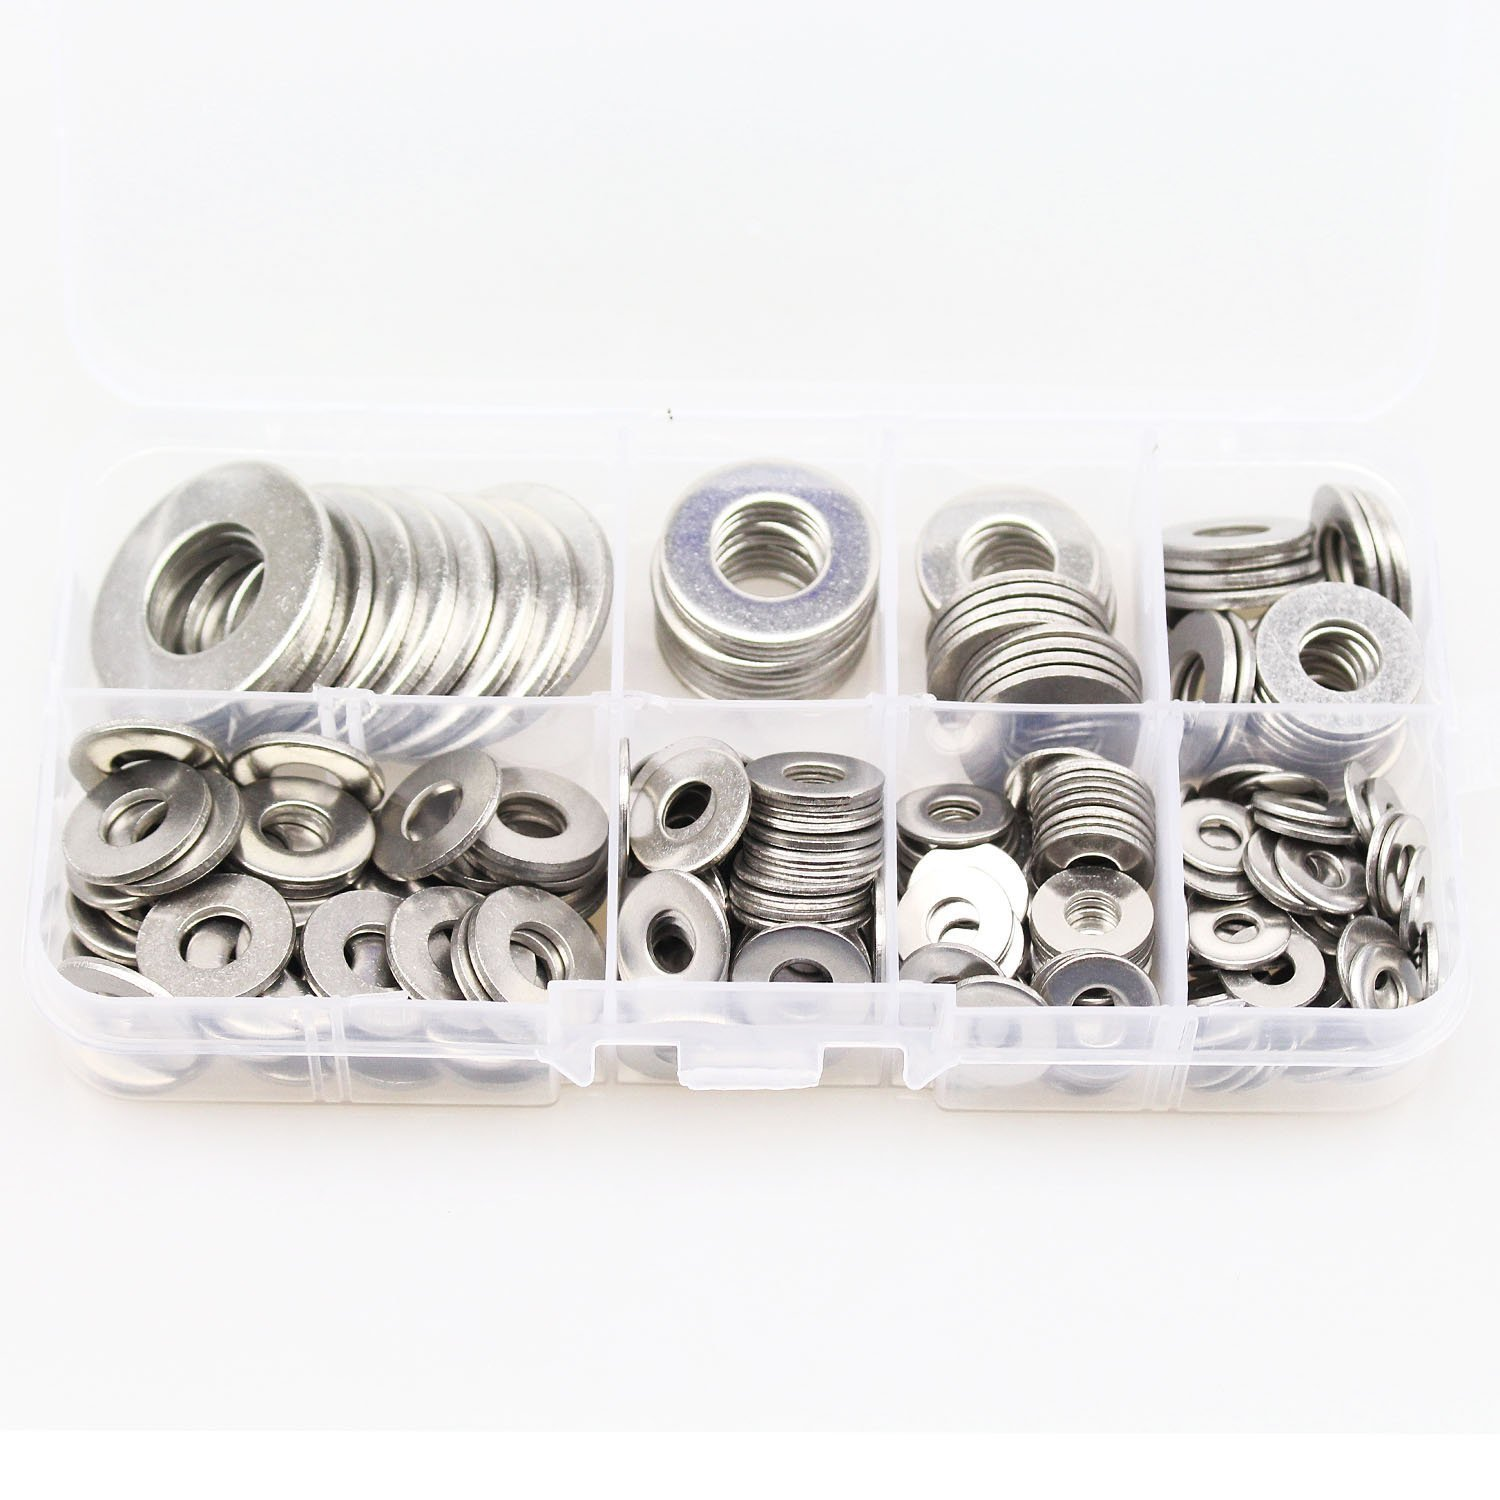 HIFROM 260pcs Flat Washers 8 Sizes 304 Stainless Steel Metric Flat Washers Assortment Set for Bolt Screw (1/2, 3/8, 5/16, 1/4, #12, #10, #8, #6)